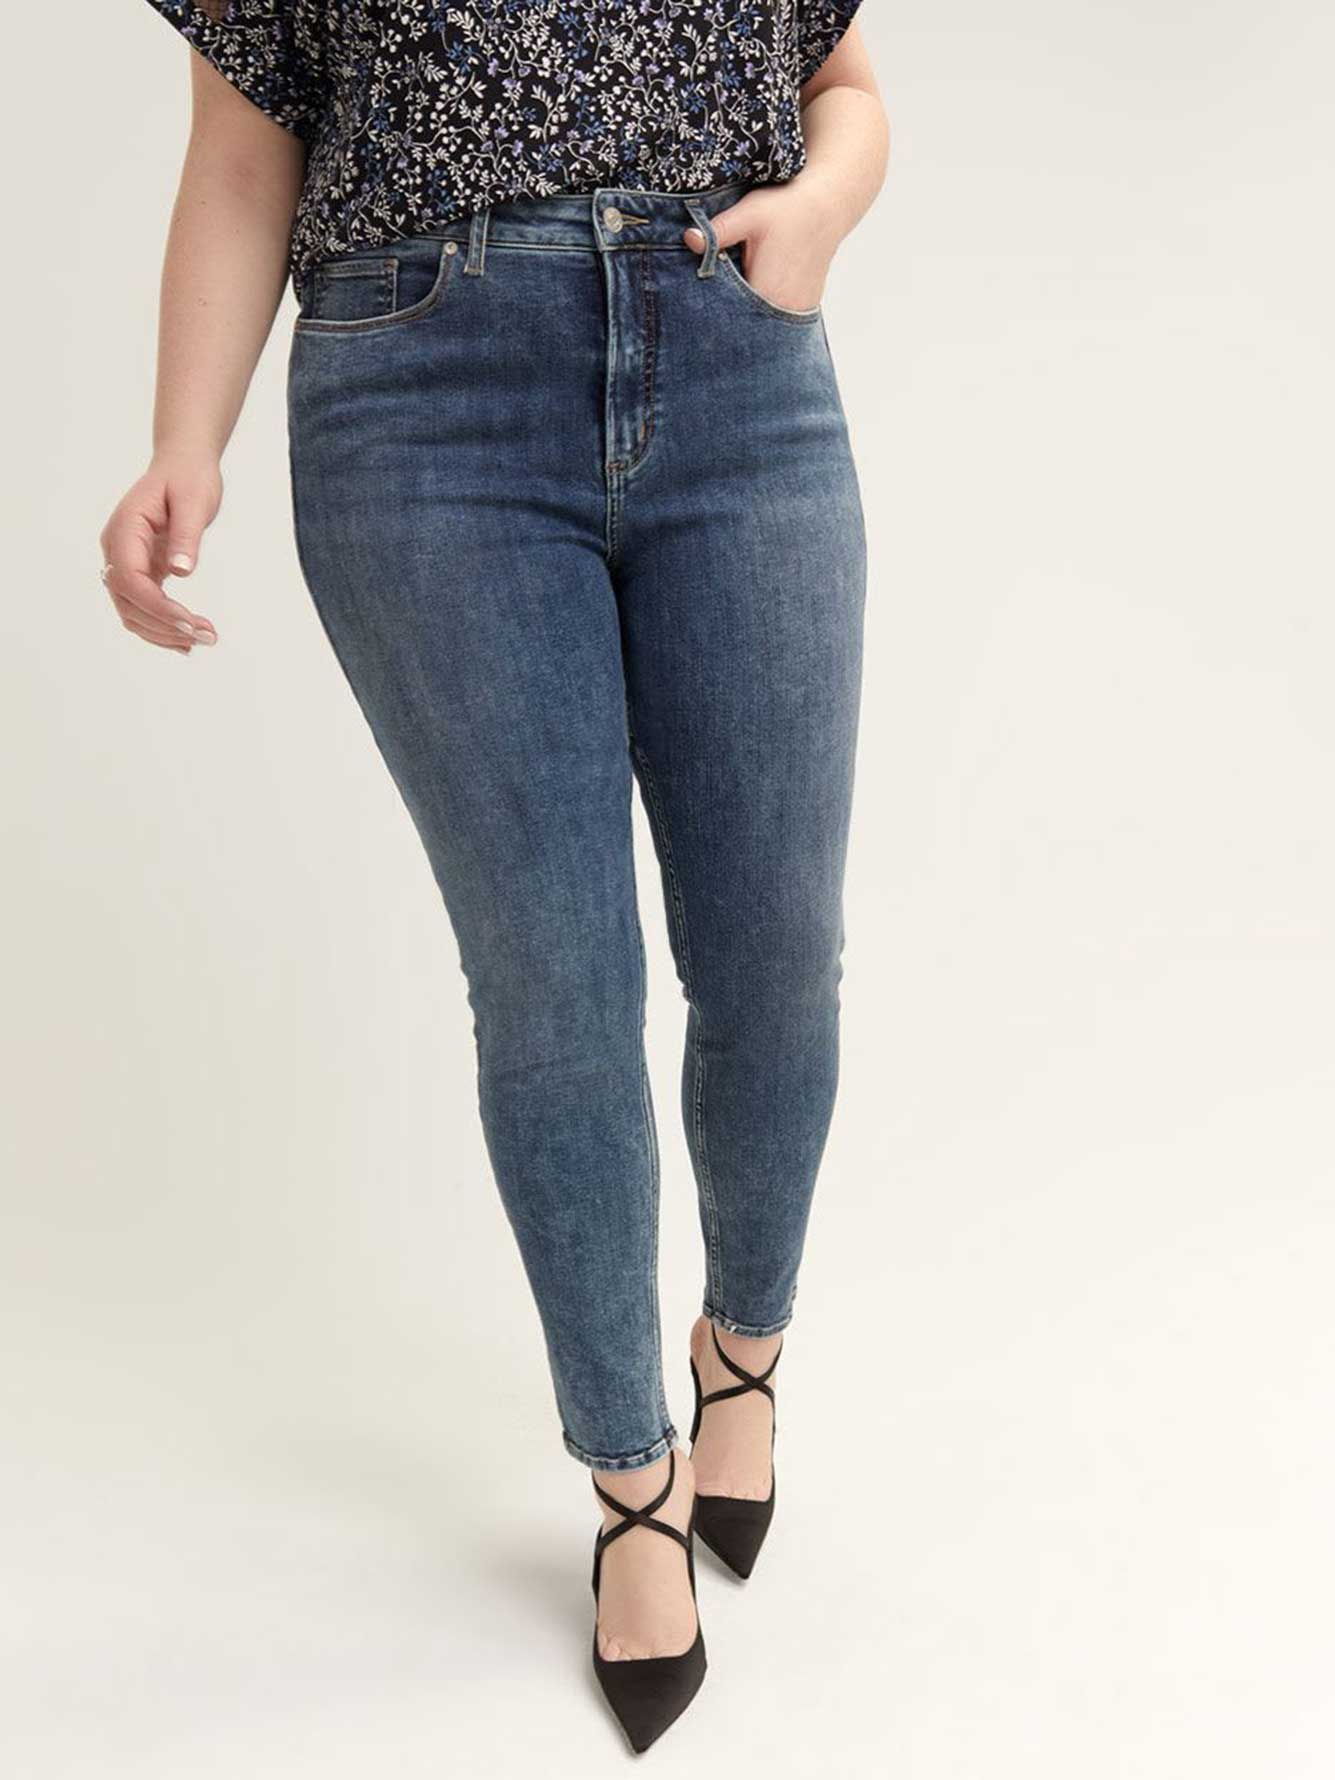 High Note Skinny Jeans - Silver Jeans